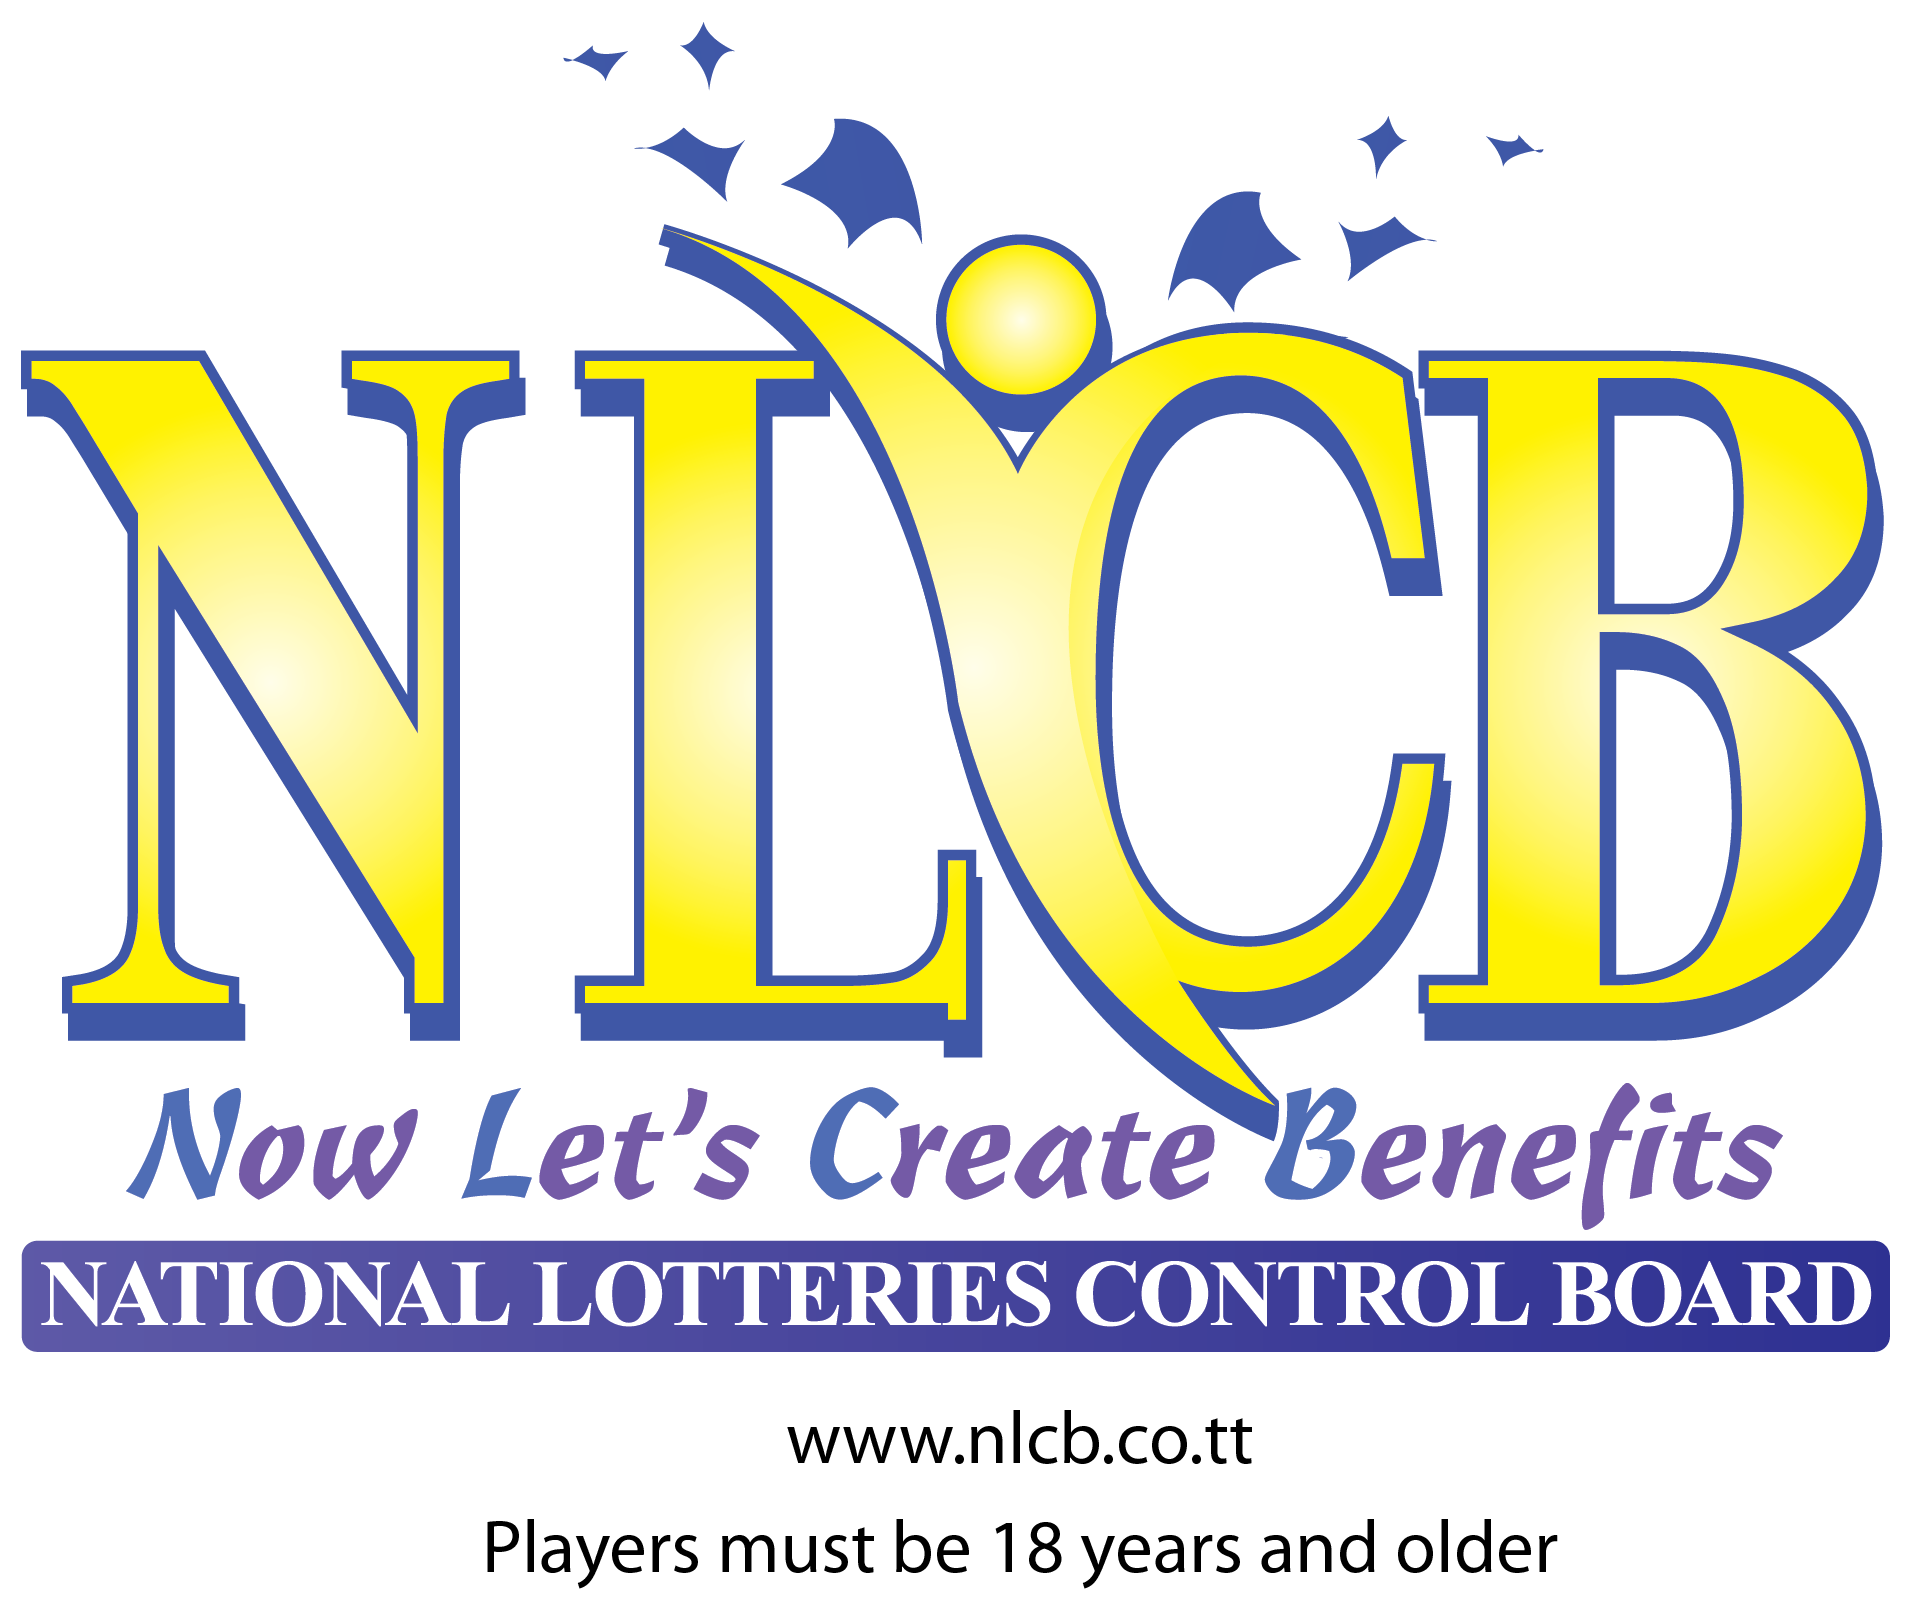 NLCB Now Let's Create Benefits